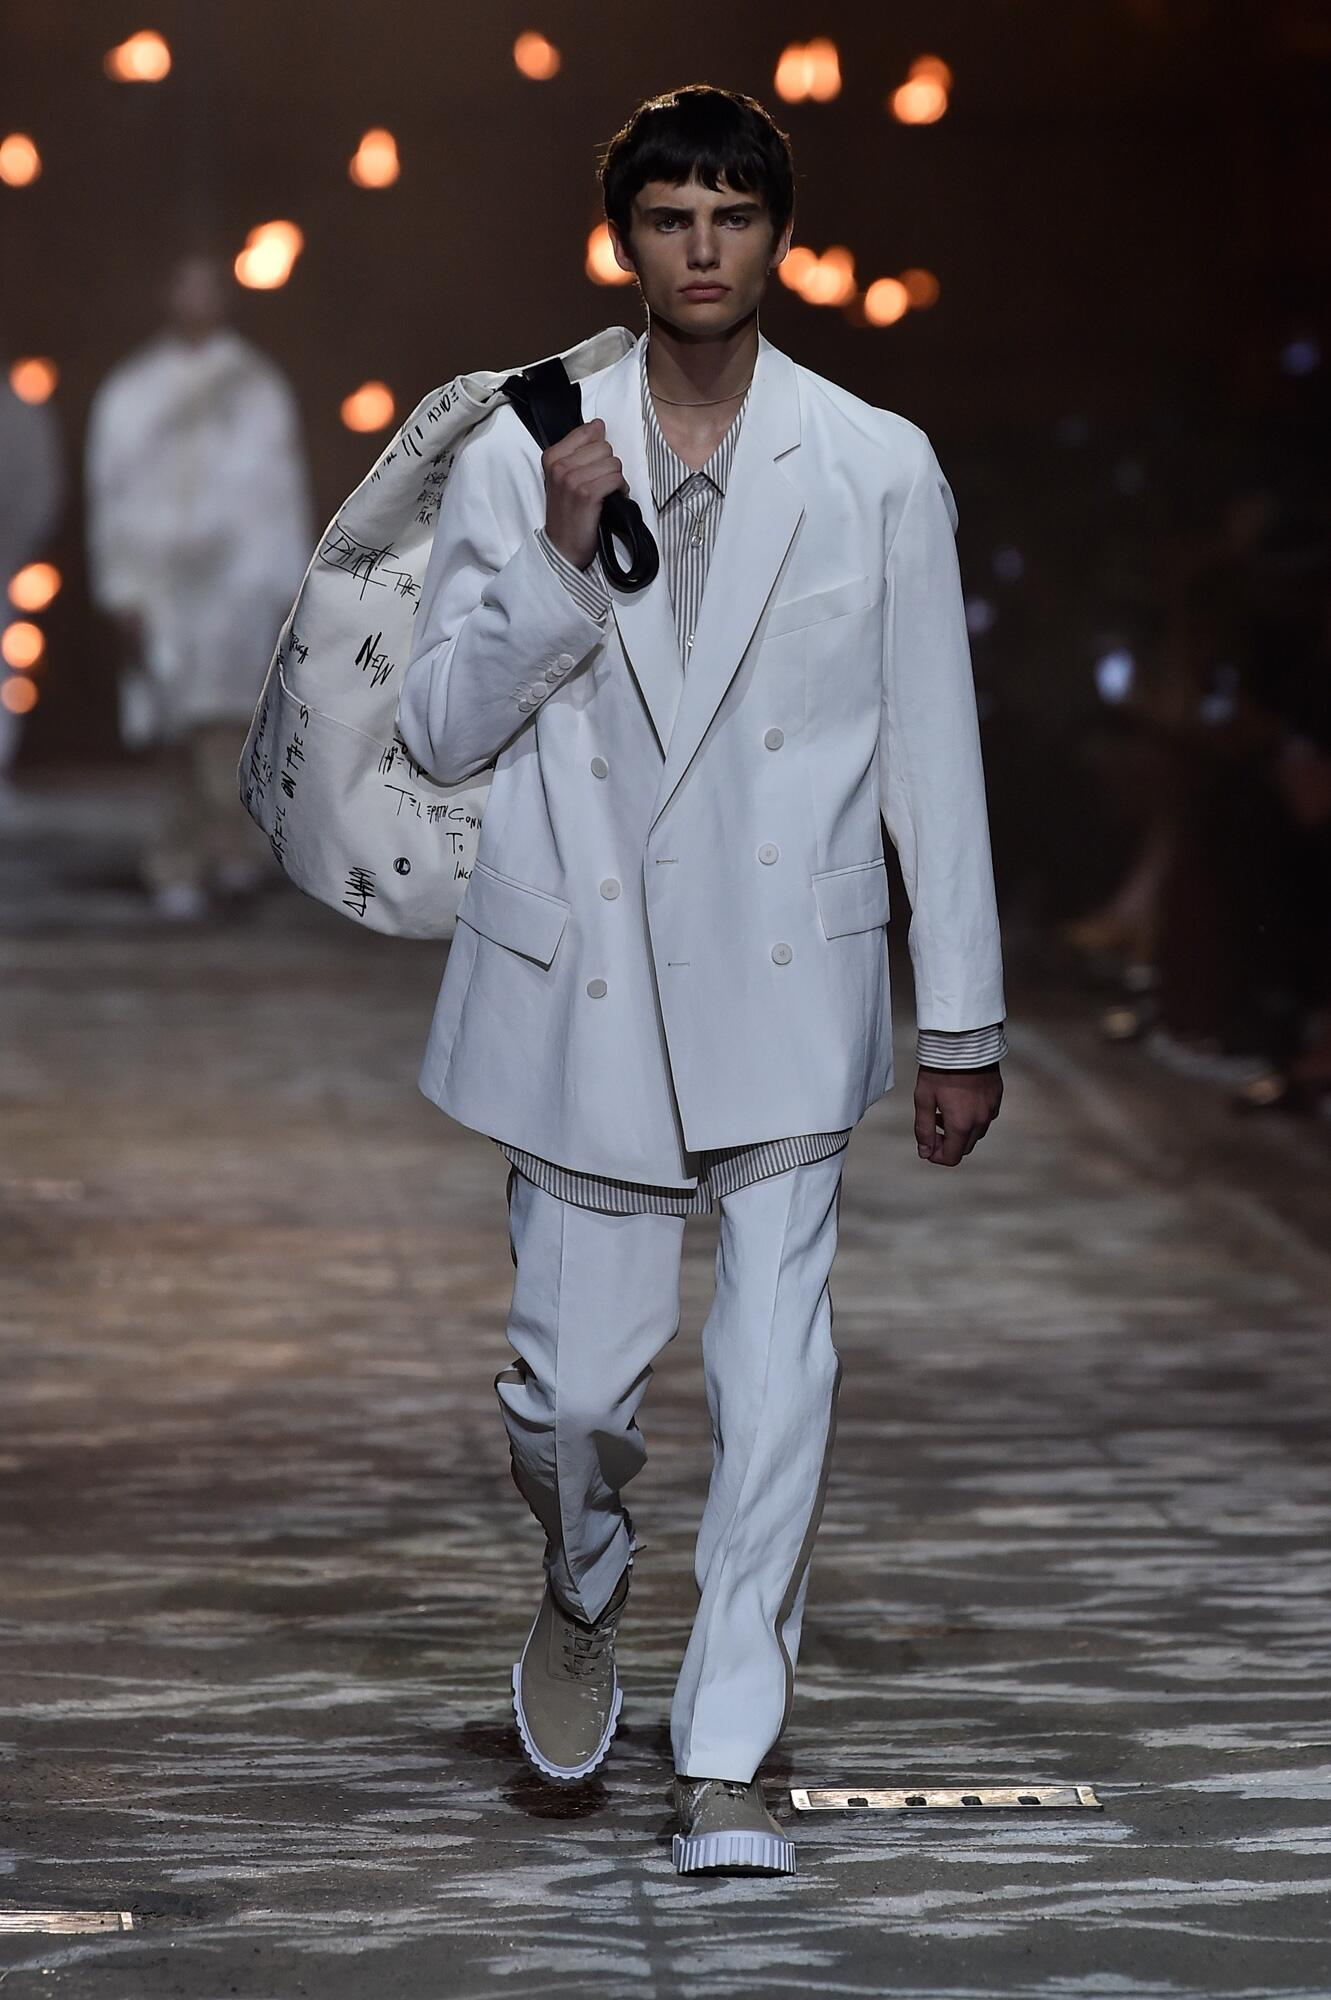 Hugo Fashion Show SS 2018 Mens Collection